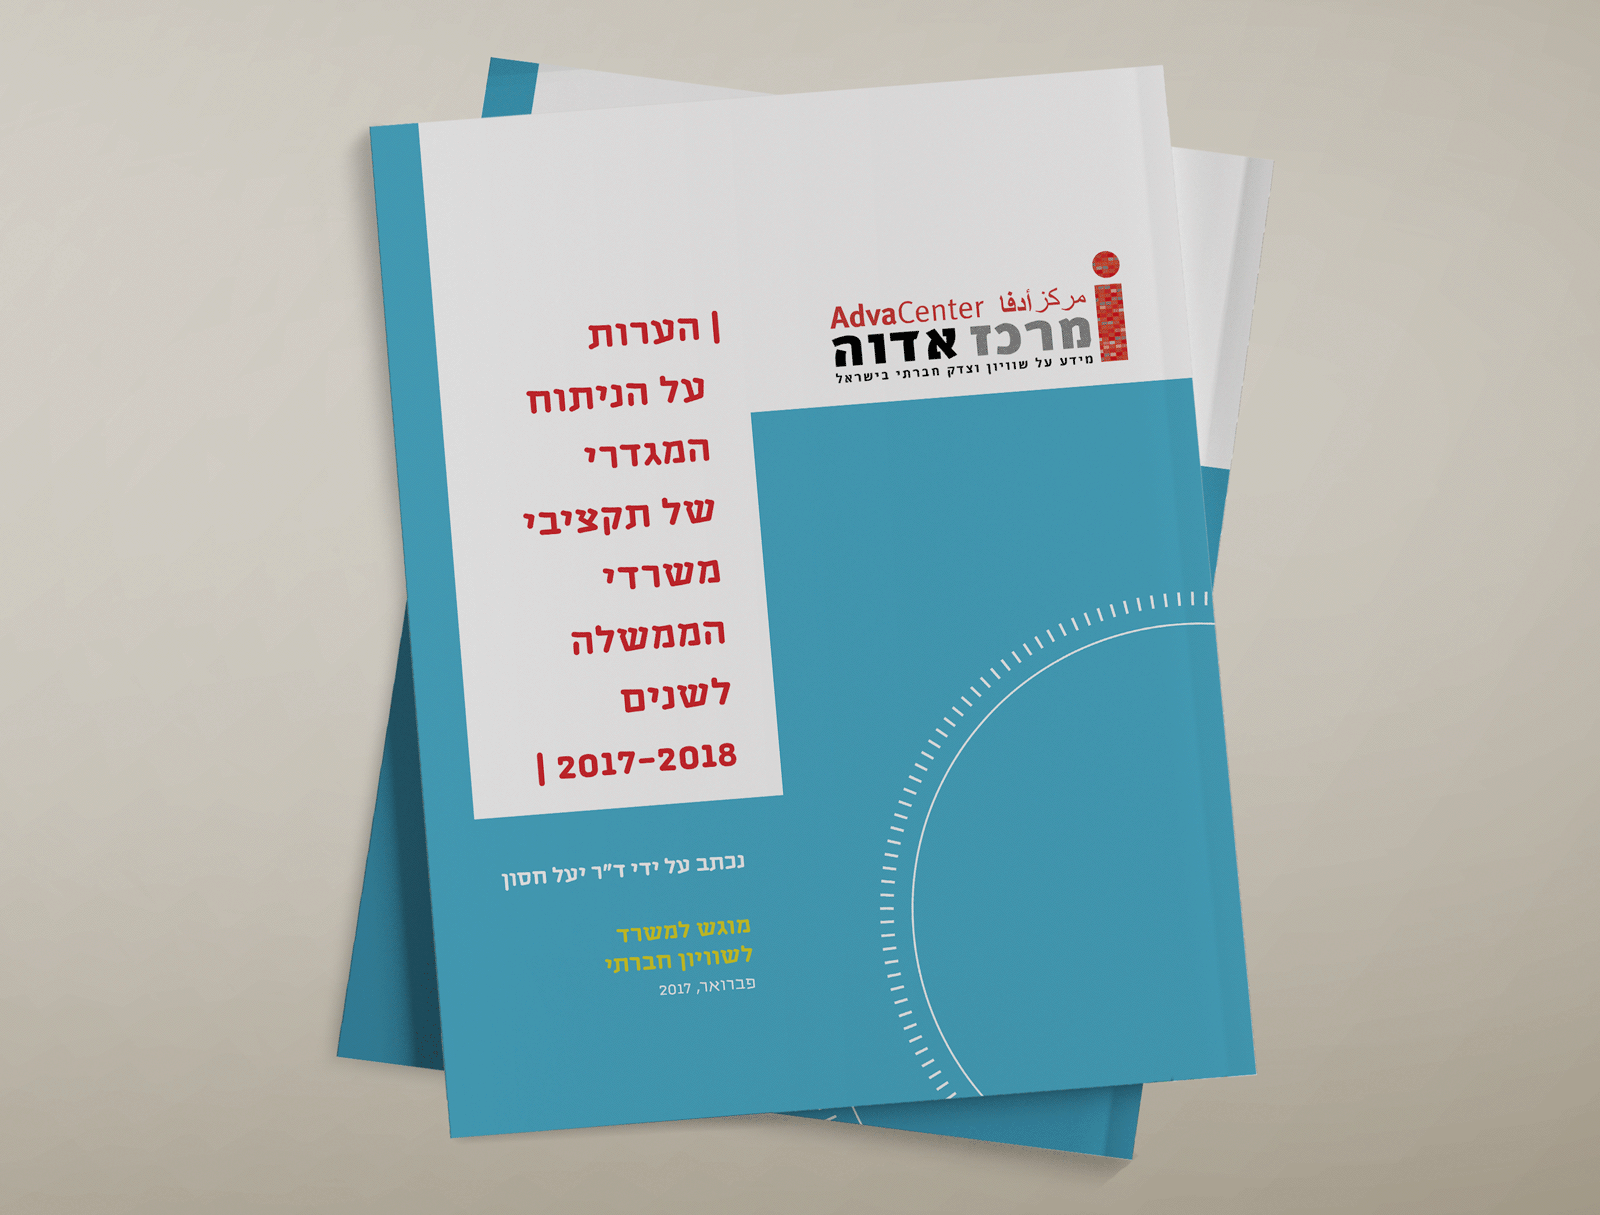 http://bigeyes.co.il/wp-content/uploads/2019/07/adva-genderbudget-cover.png